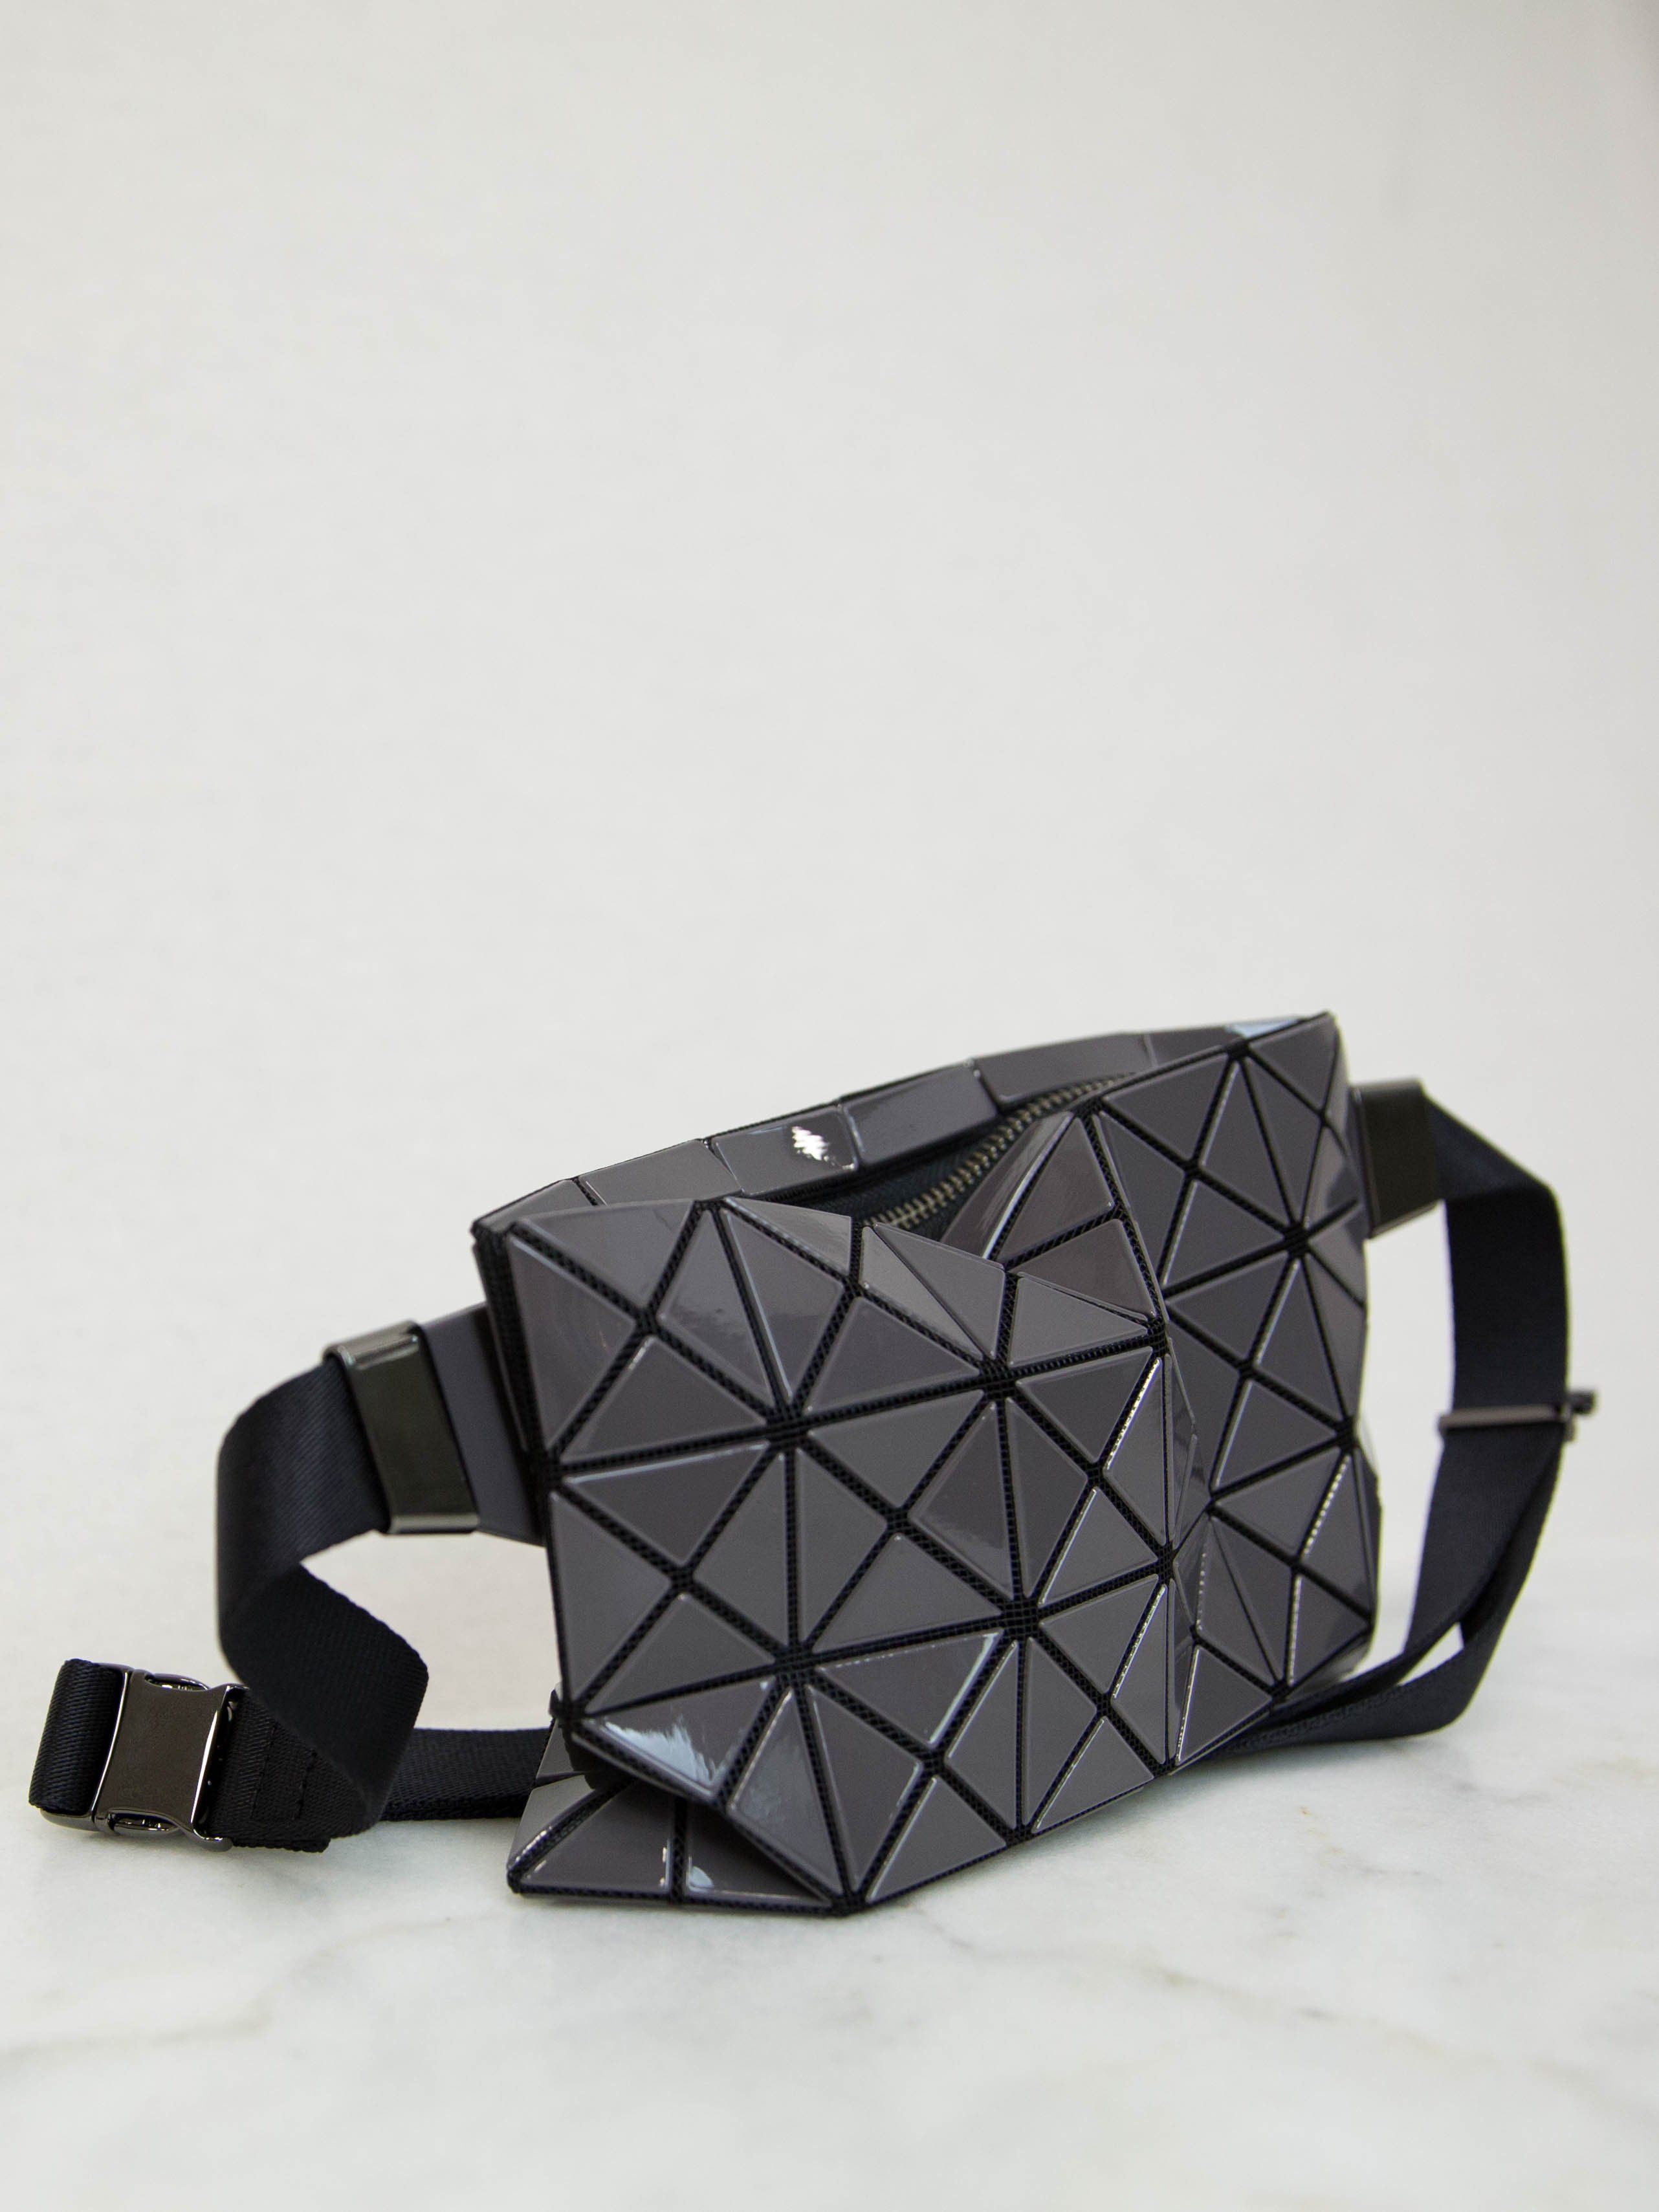 new product 2a34a 6d631 BAO BAO ISSEY MIYAKE Waist Bag | Styles in 2019 | Bags ...